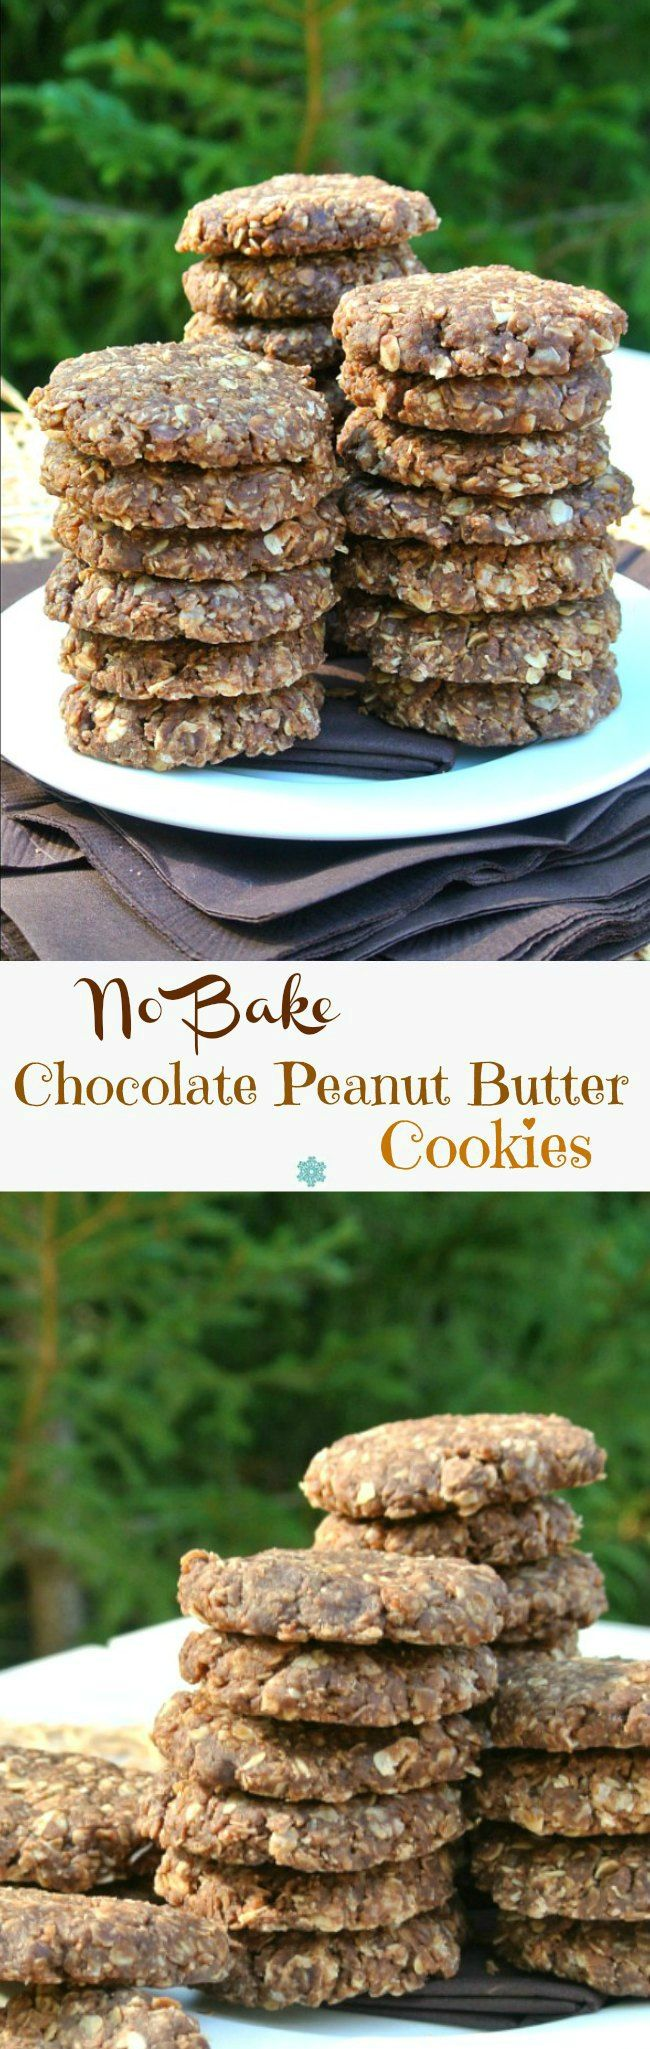 No Bake Chocolate Peanut Butter Cookies are a favorite, have no refined sugar, take 10 minutes to make, have the texture of a cookie. 5 Wins!  @Silk #DoPlants